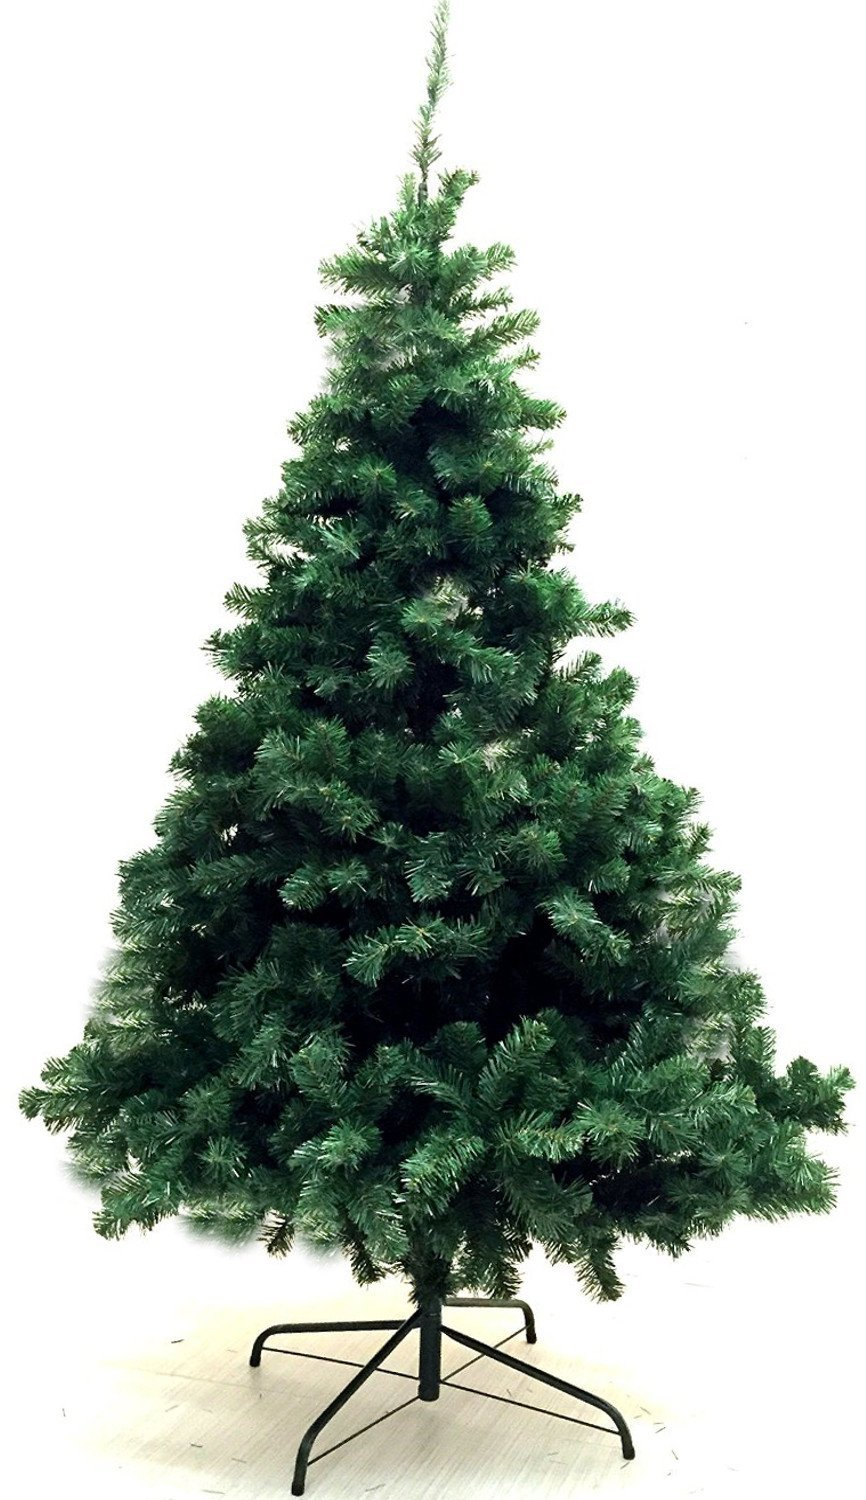 10 Best Christmas Trees For Your Home